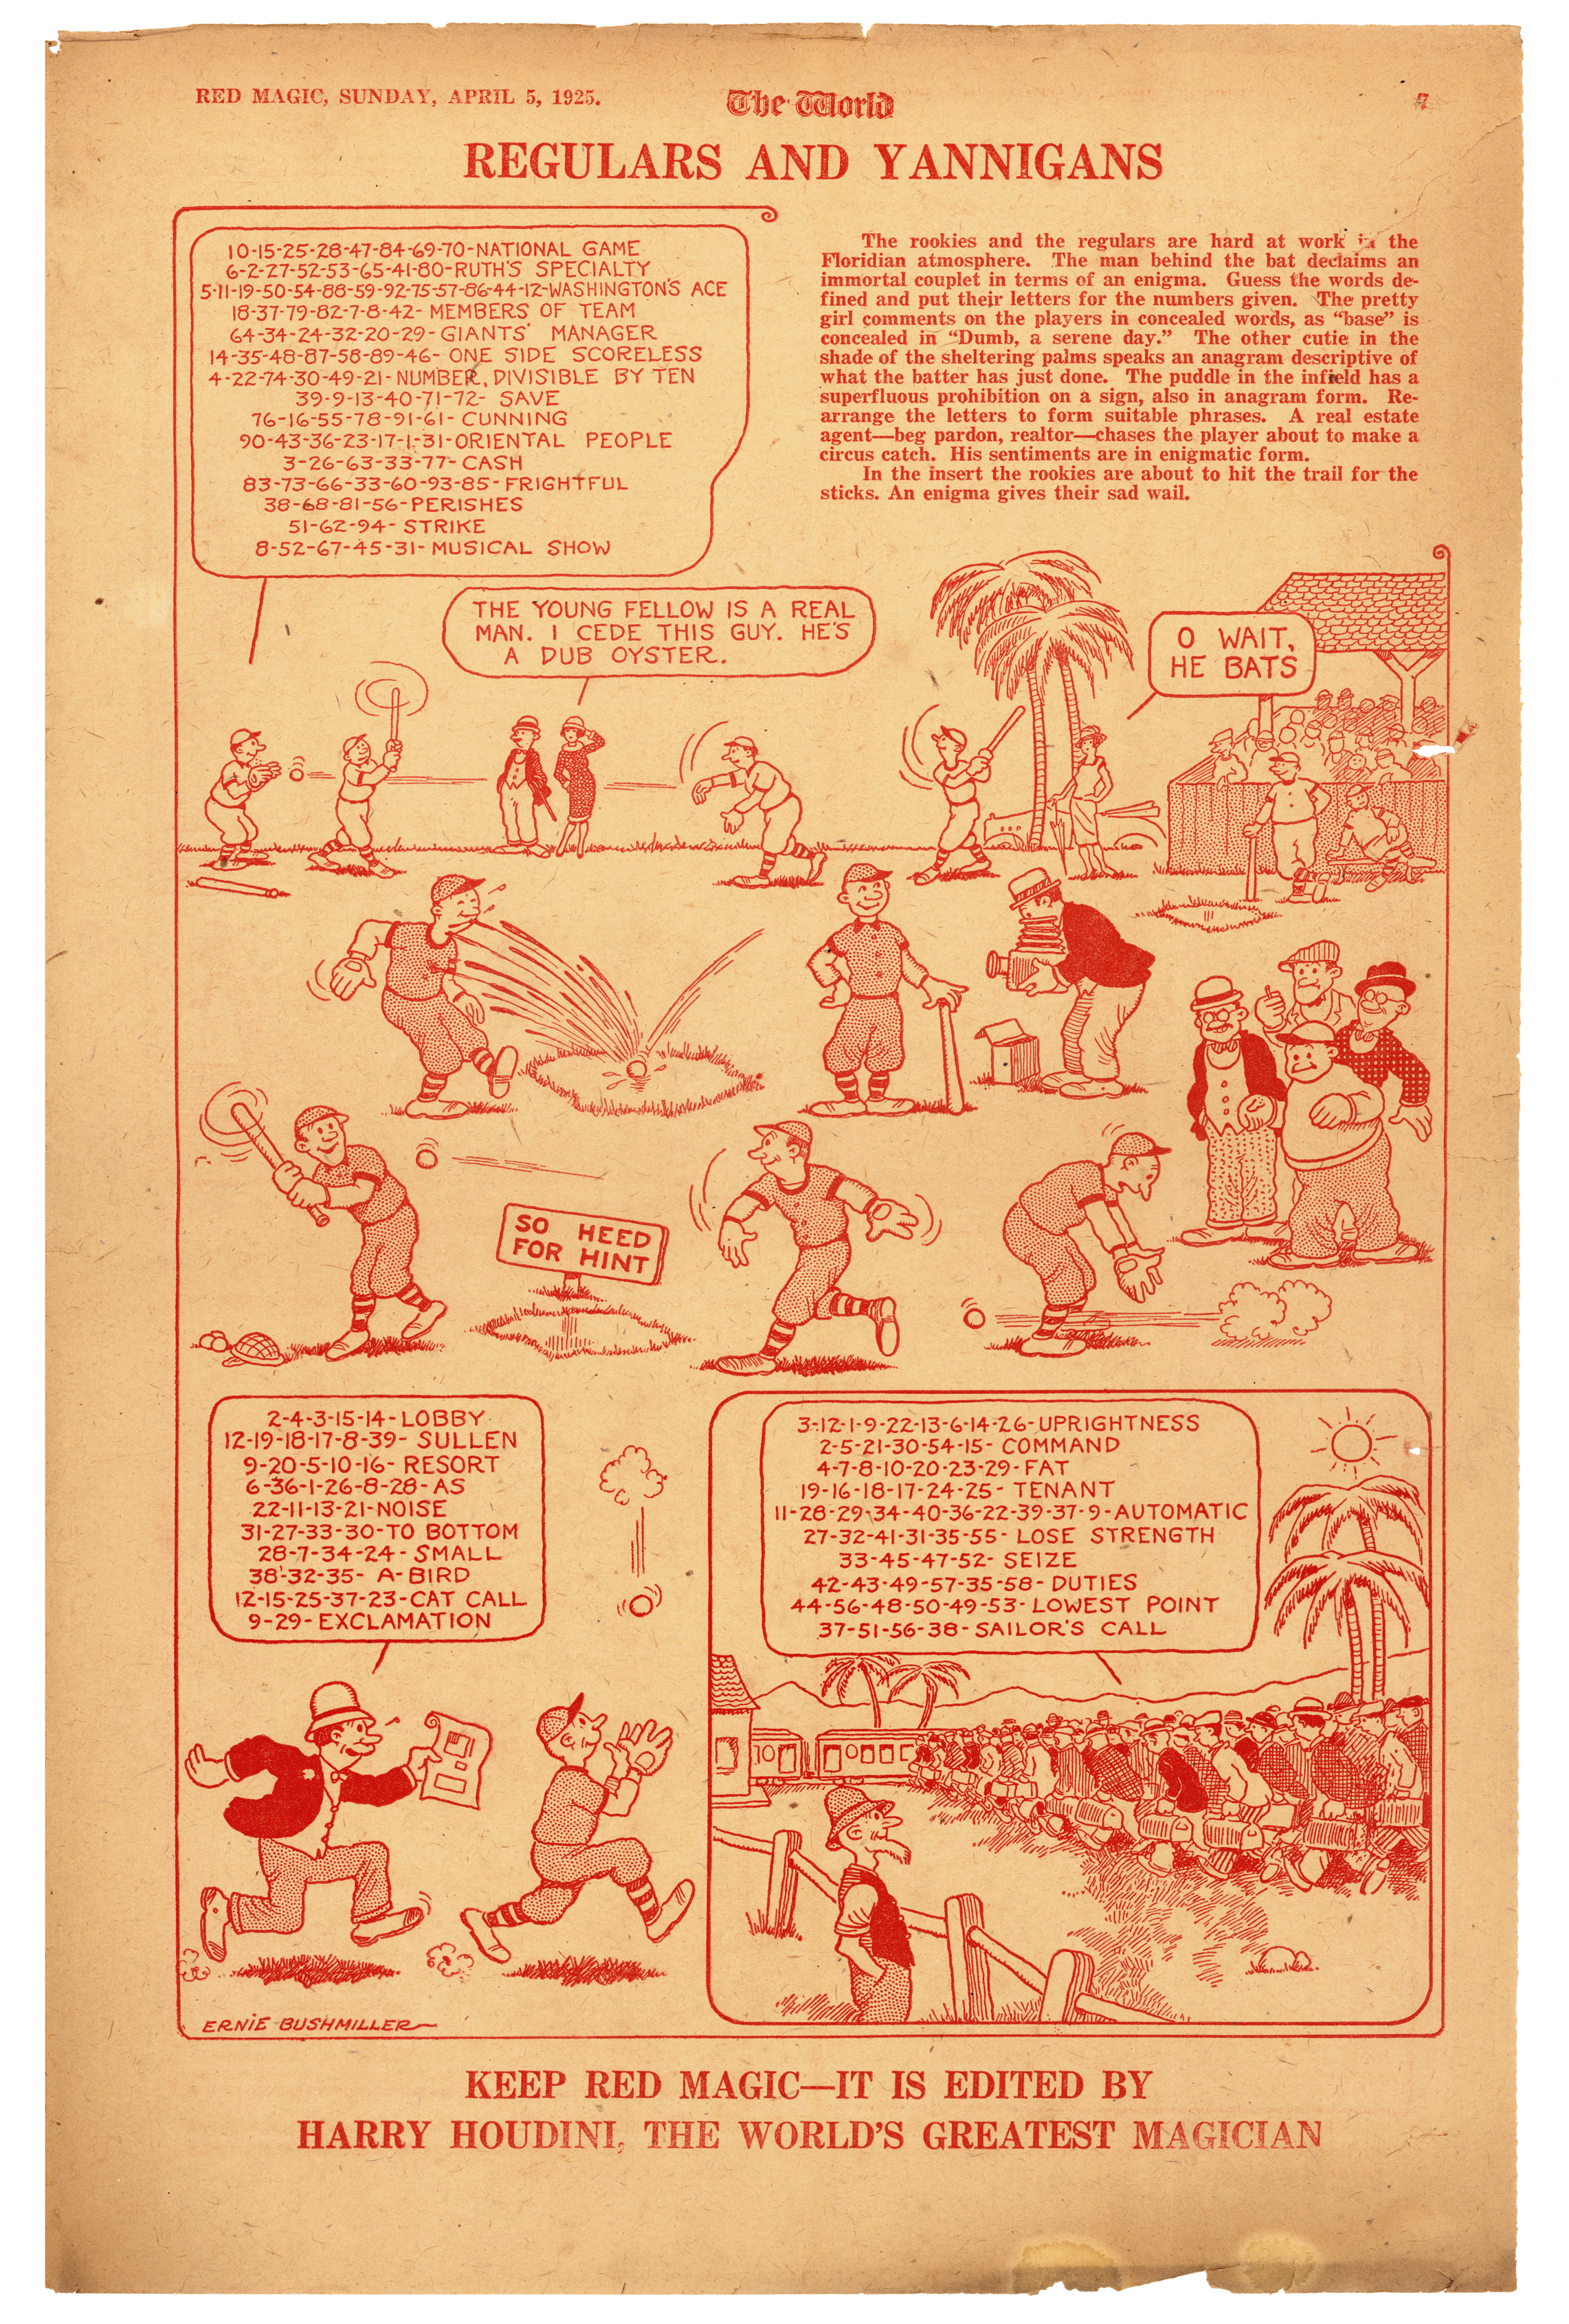 A 1925 page featuring pre-Nancy art by Bushmiller (click to enlarge).